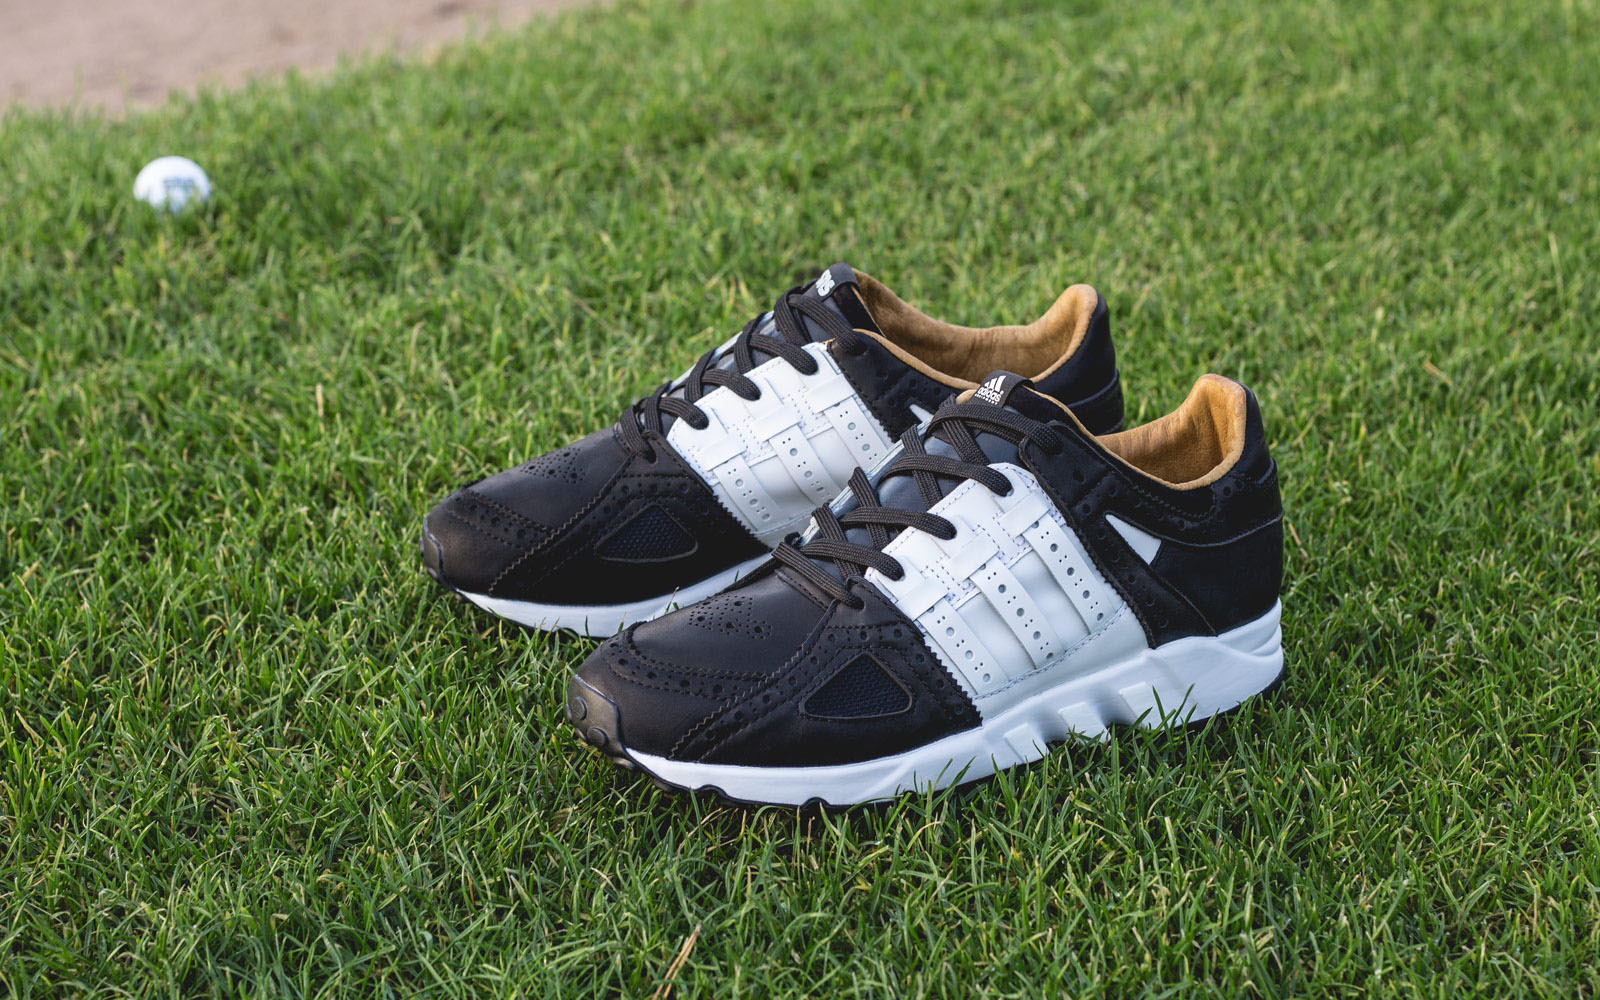 info for cba8e 883ed adidas Equipment Running Guidance 93 - Af5755 - Sneakersnstuff   sneakers    streetwear online since 1999